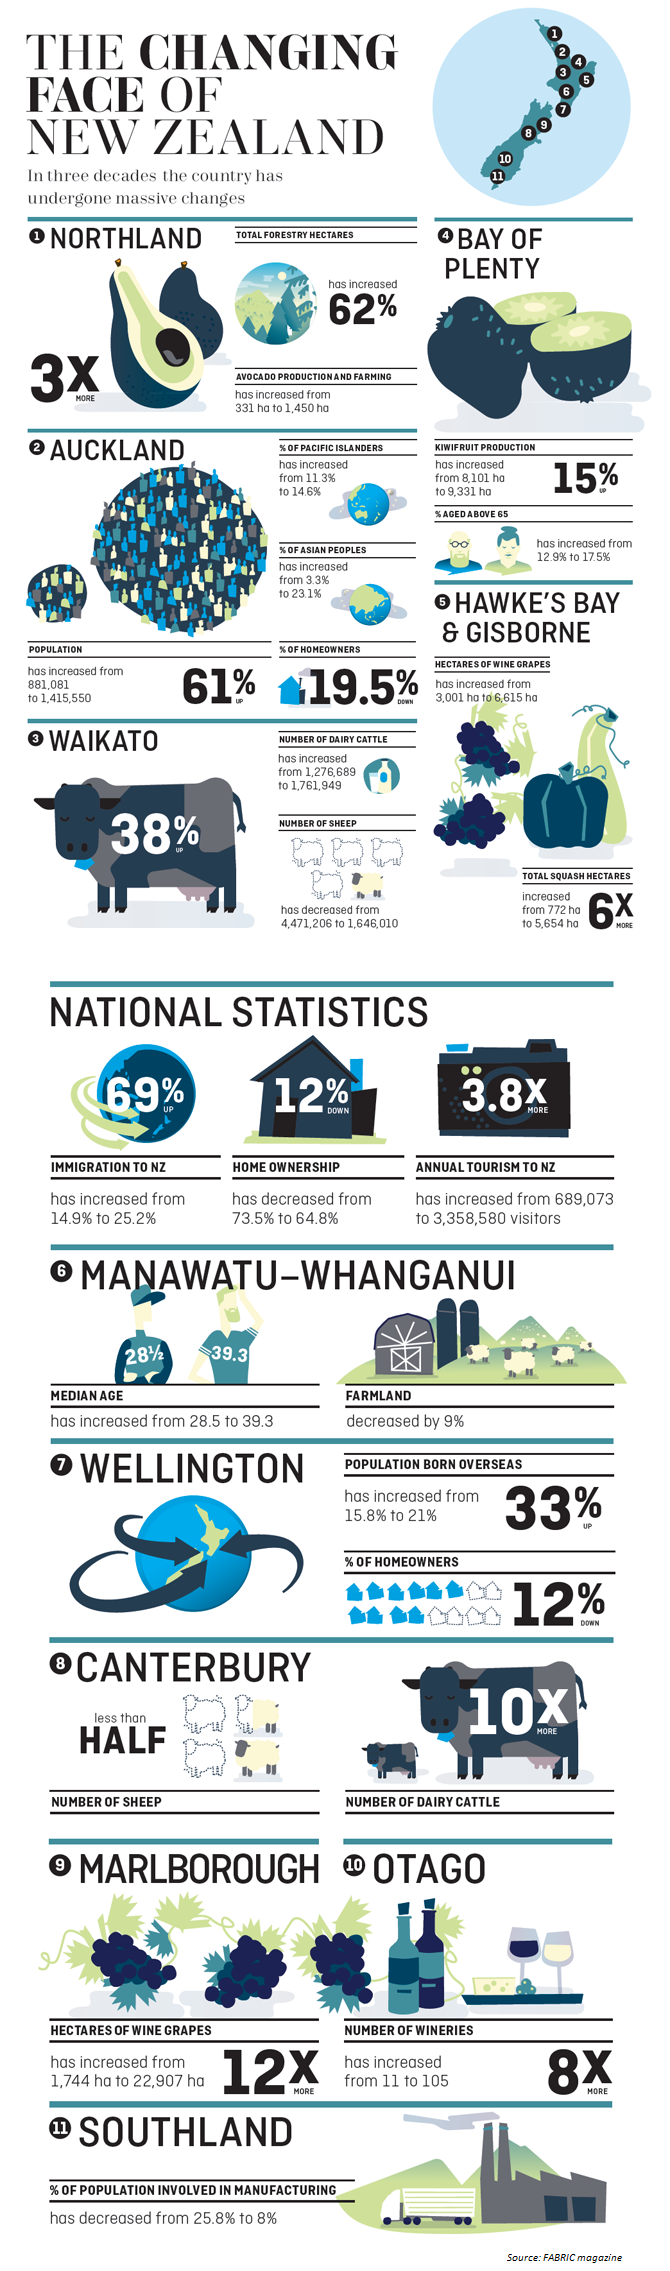 The changing face of NZ infog